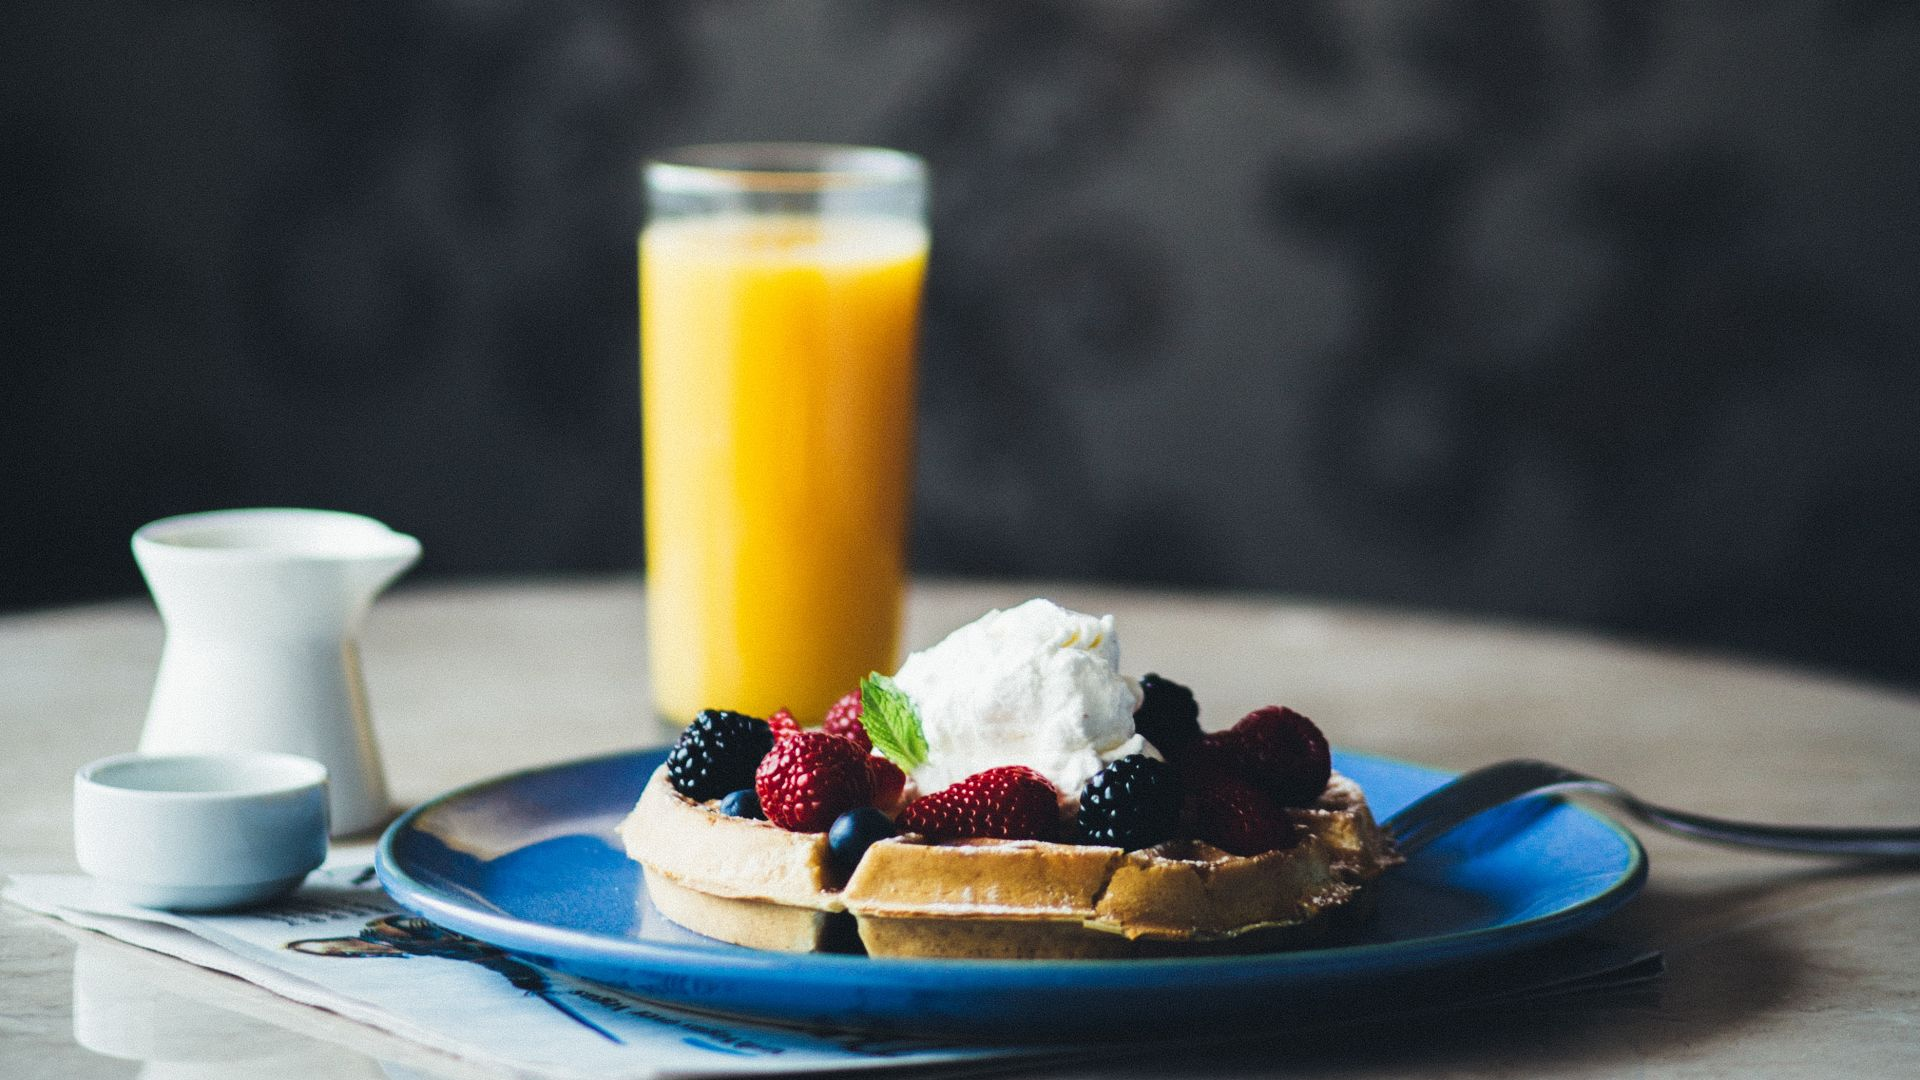 | Bed & Breakfast in Arlington | Enjoy a savory start to your day by booking Bed & Breakfast. | Book Now